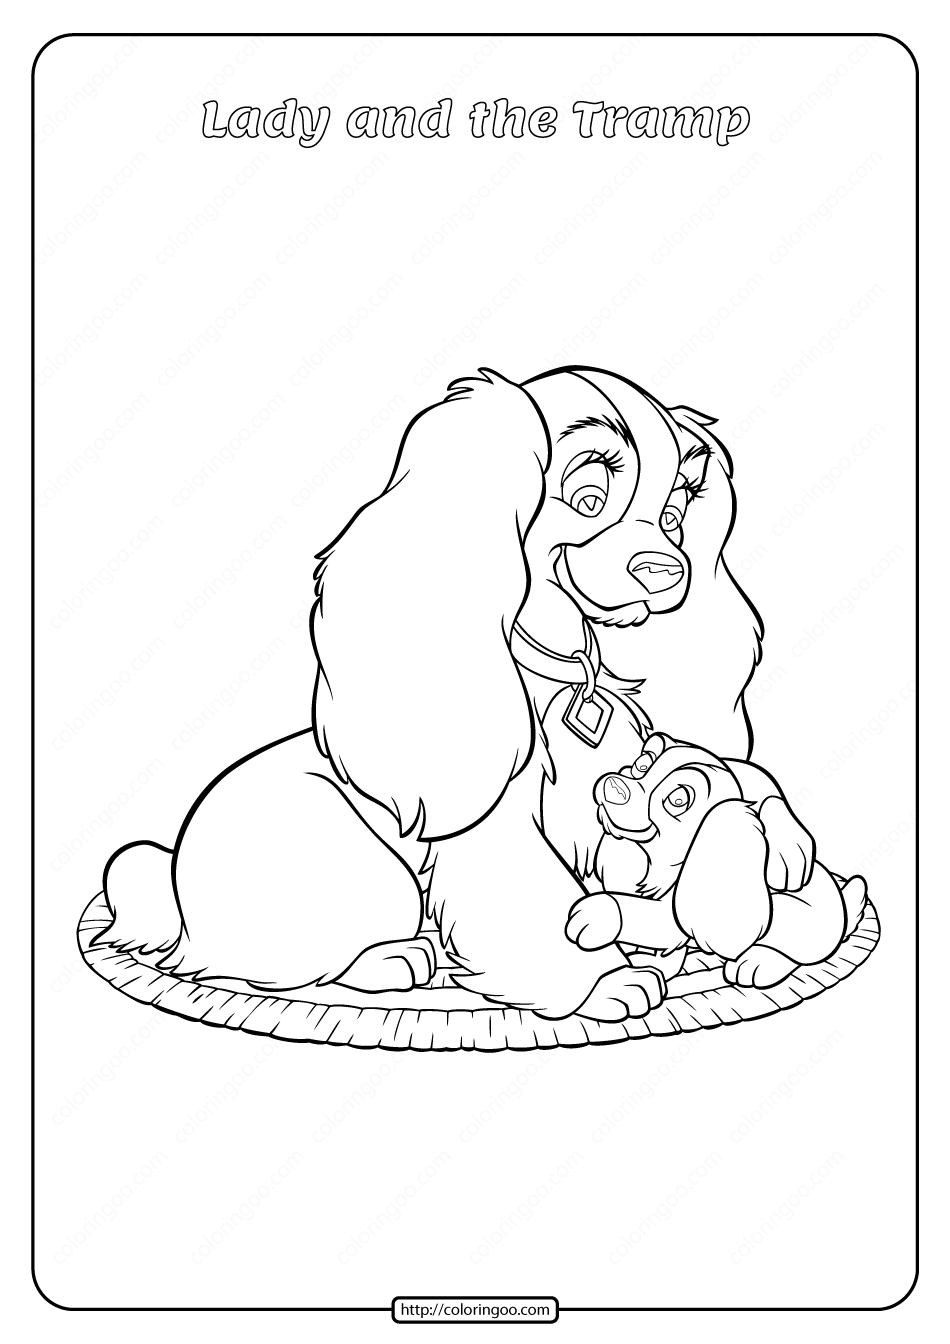 Printable Lady and the Tramp Coloring Pages 06